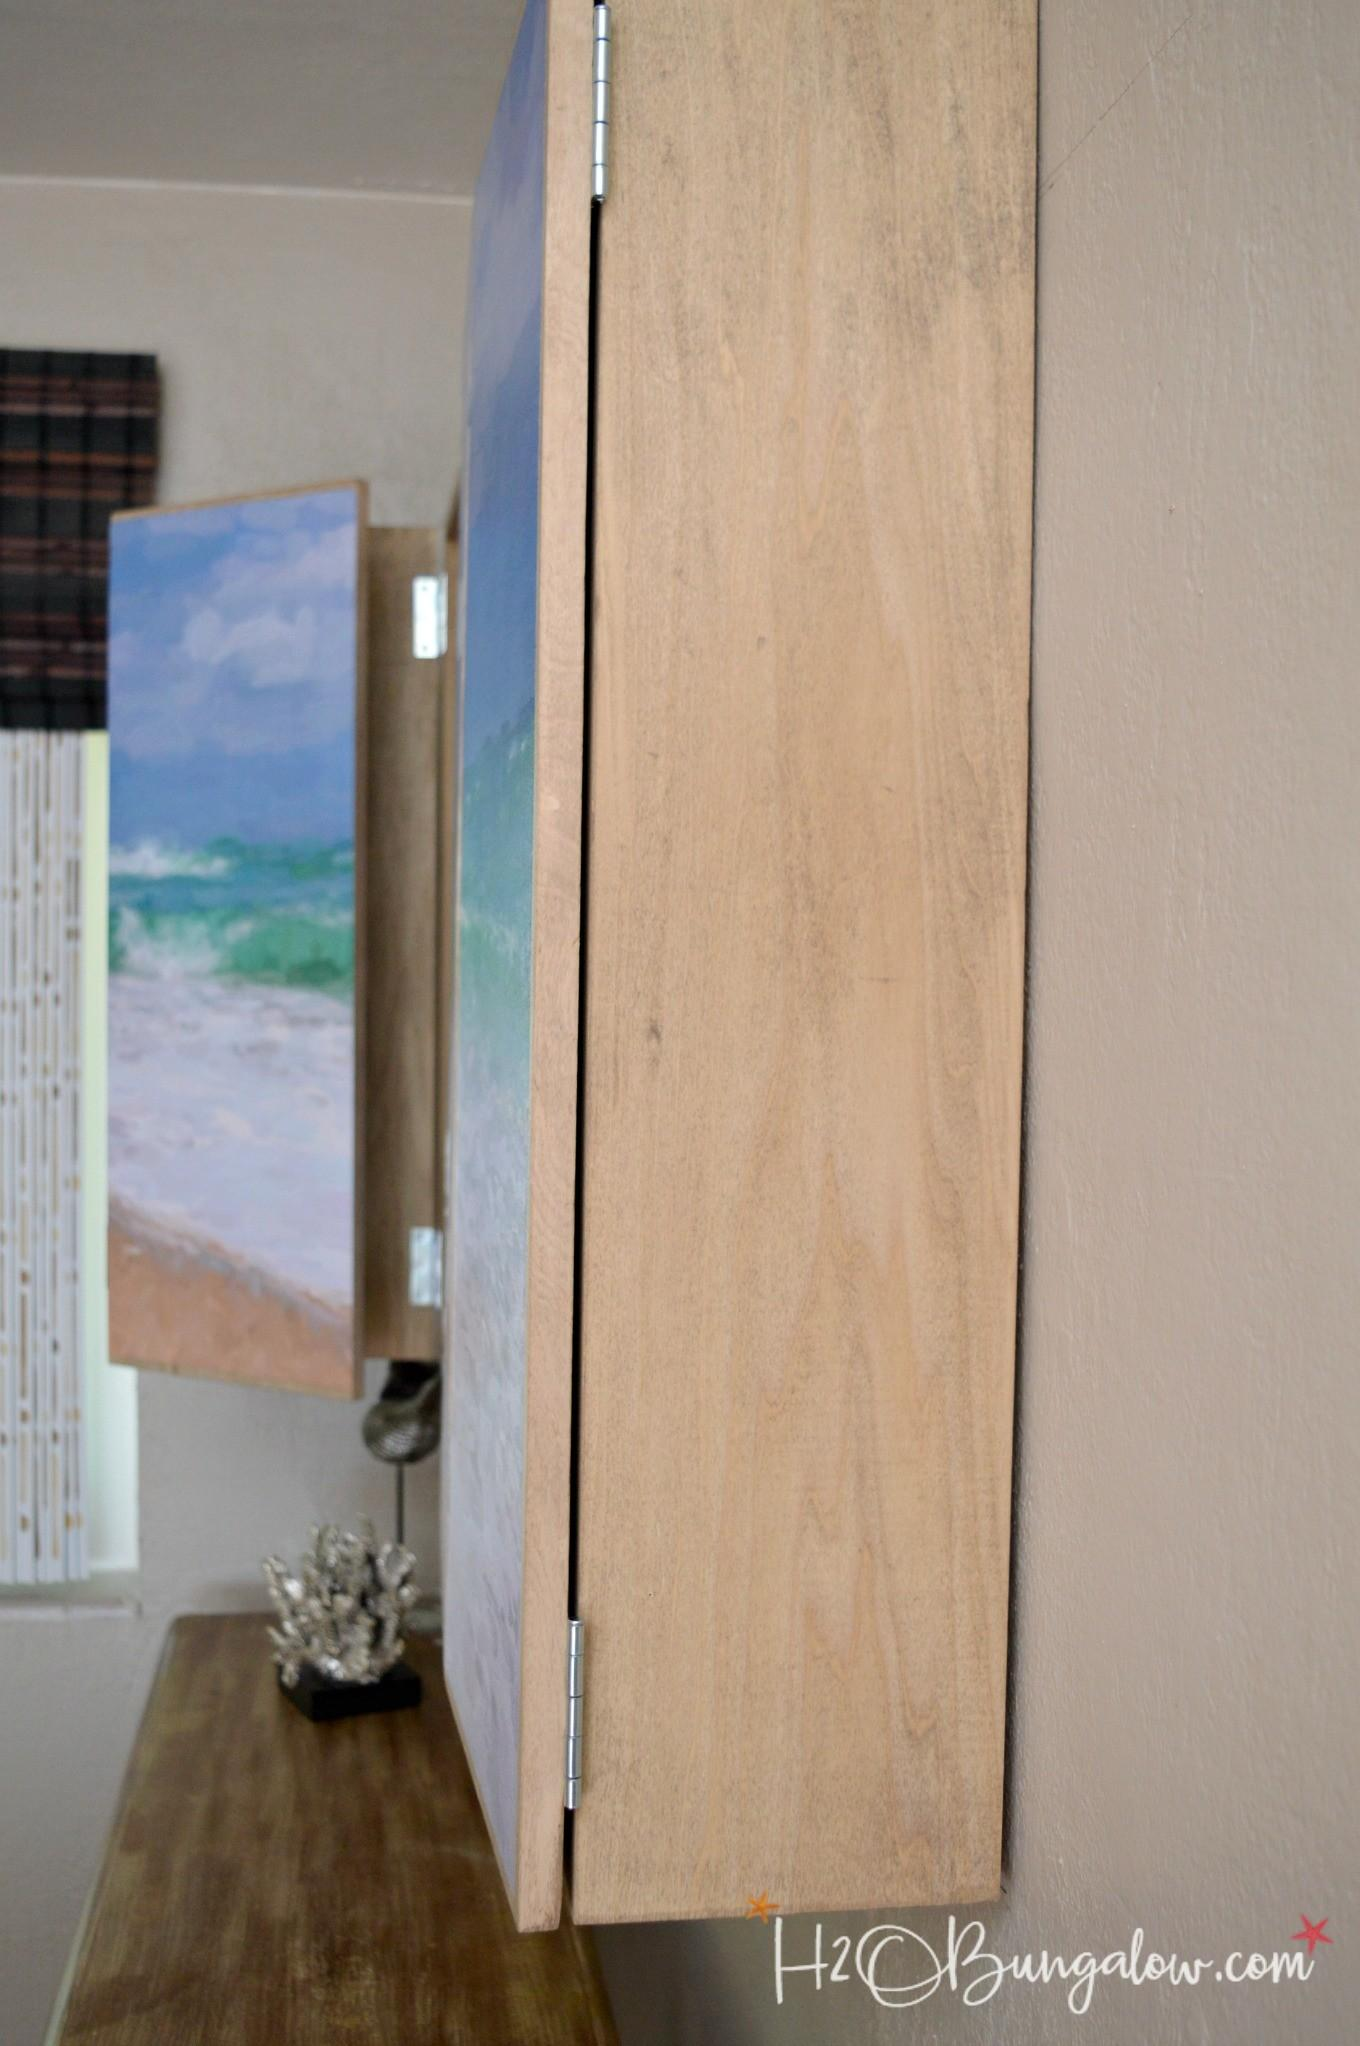 Diy Wall Mounted Cabinet Plans H20bungalow